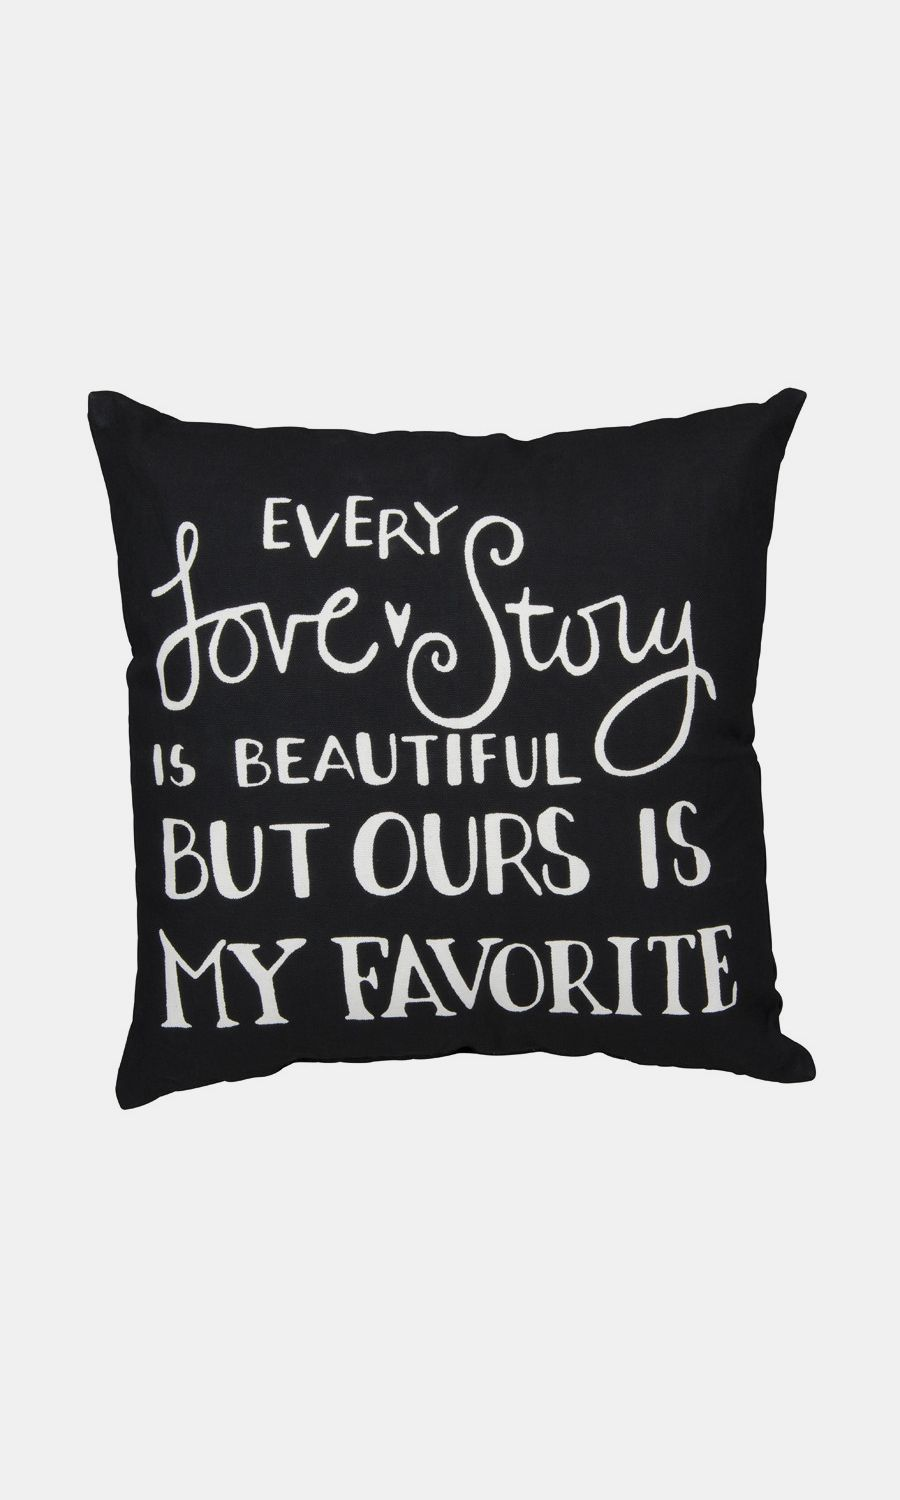 Every love story accent pillow me pinterest pillows house